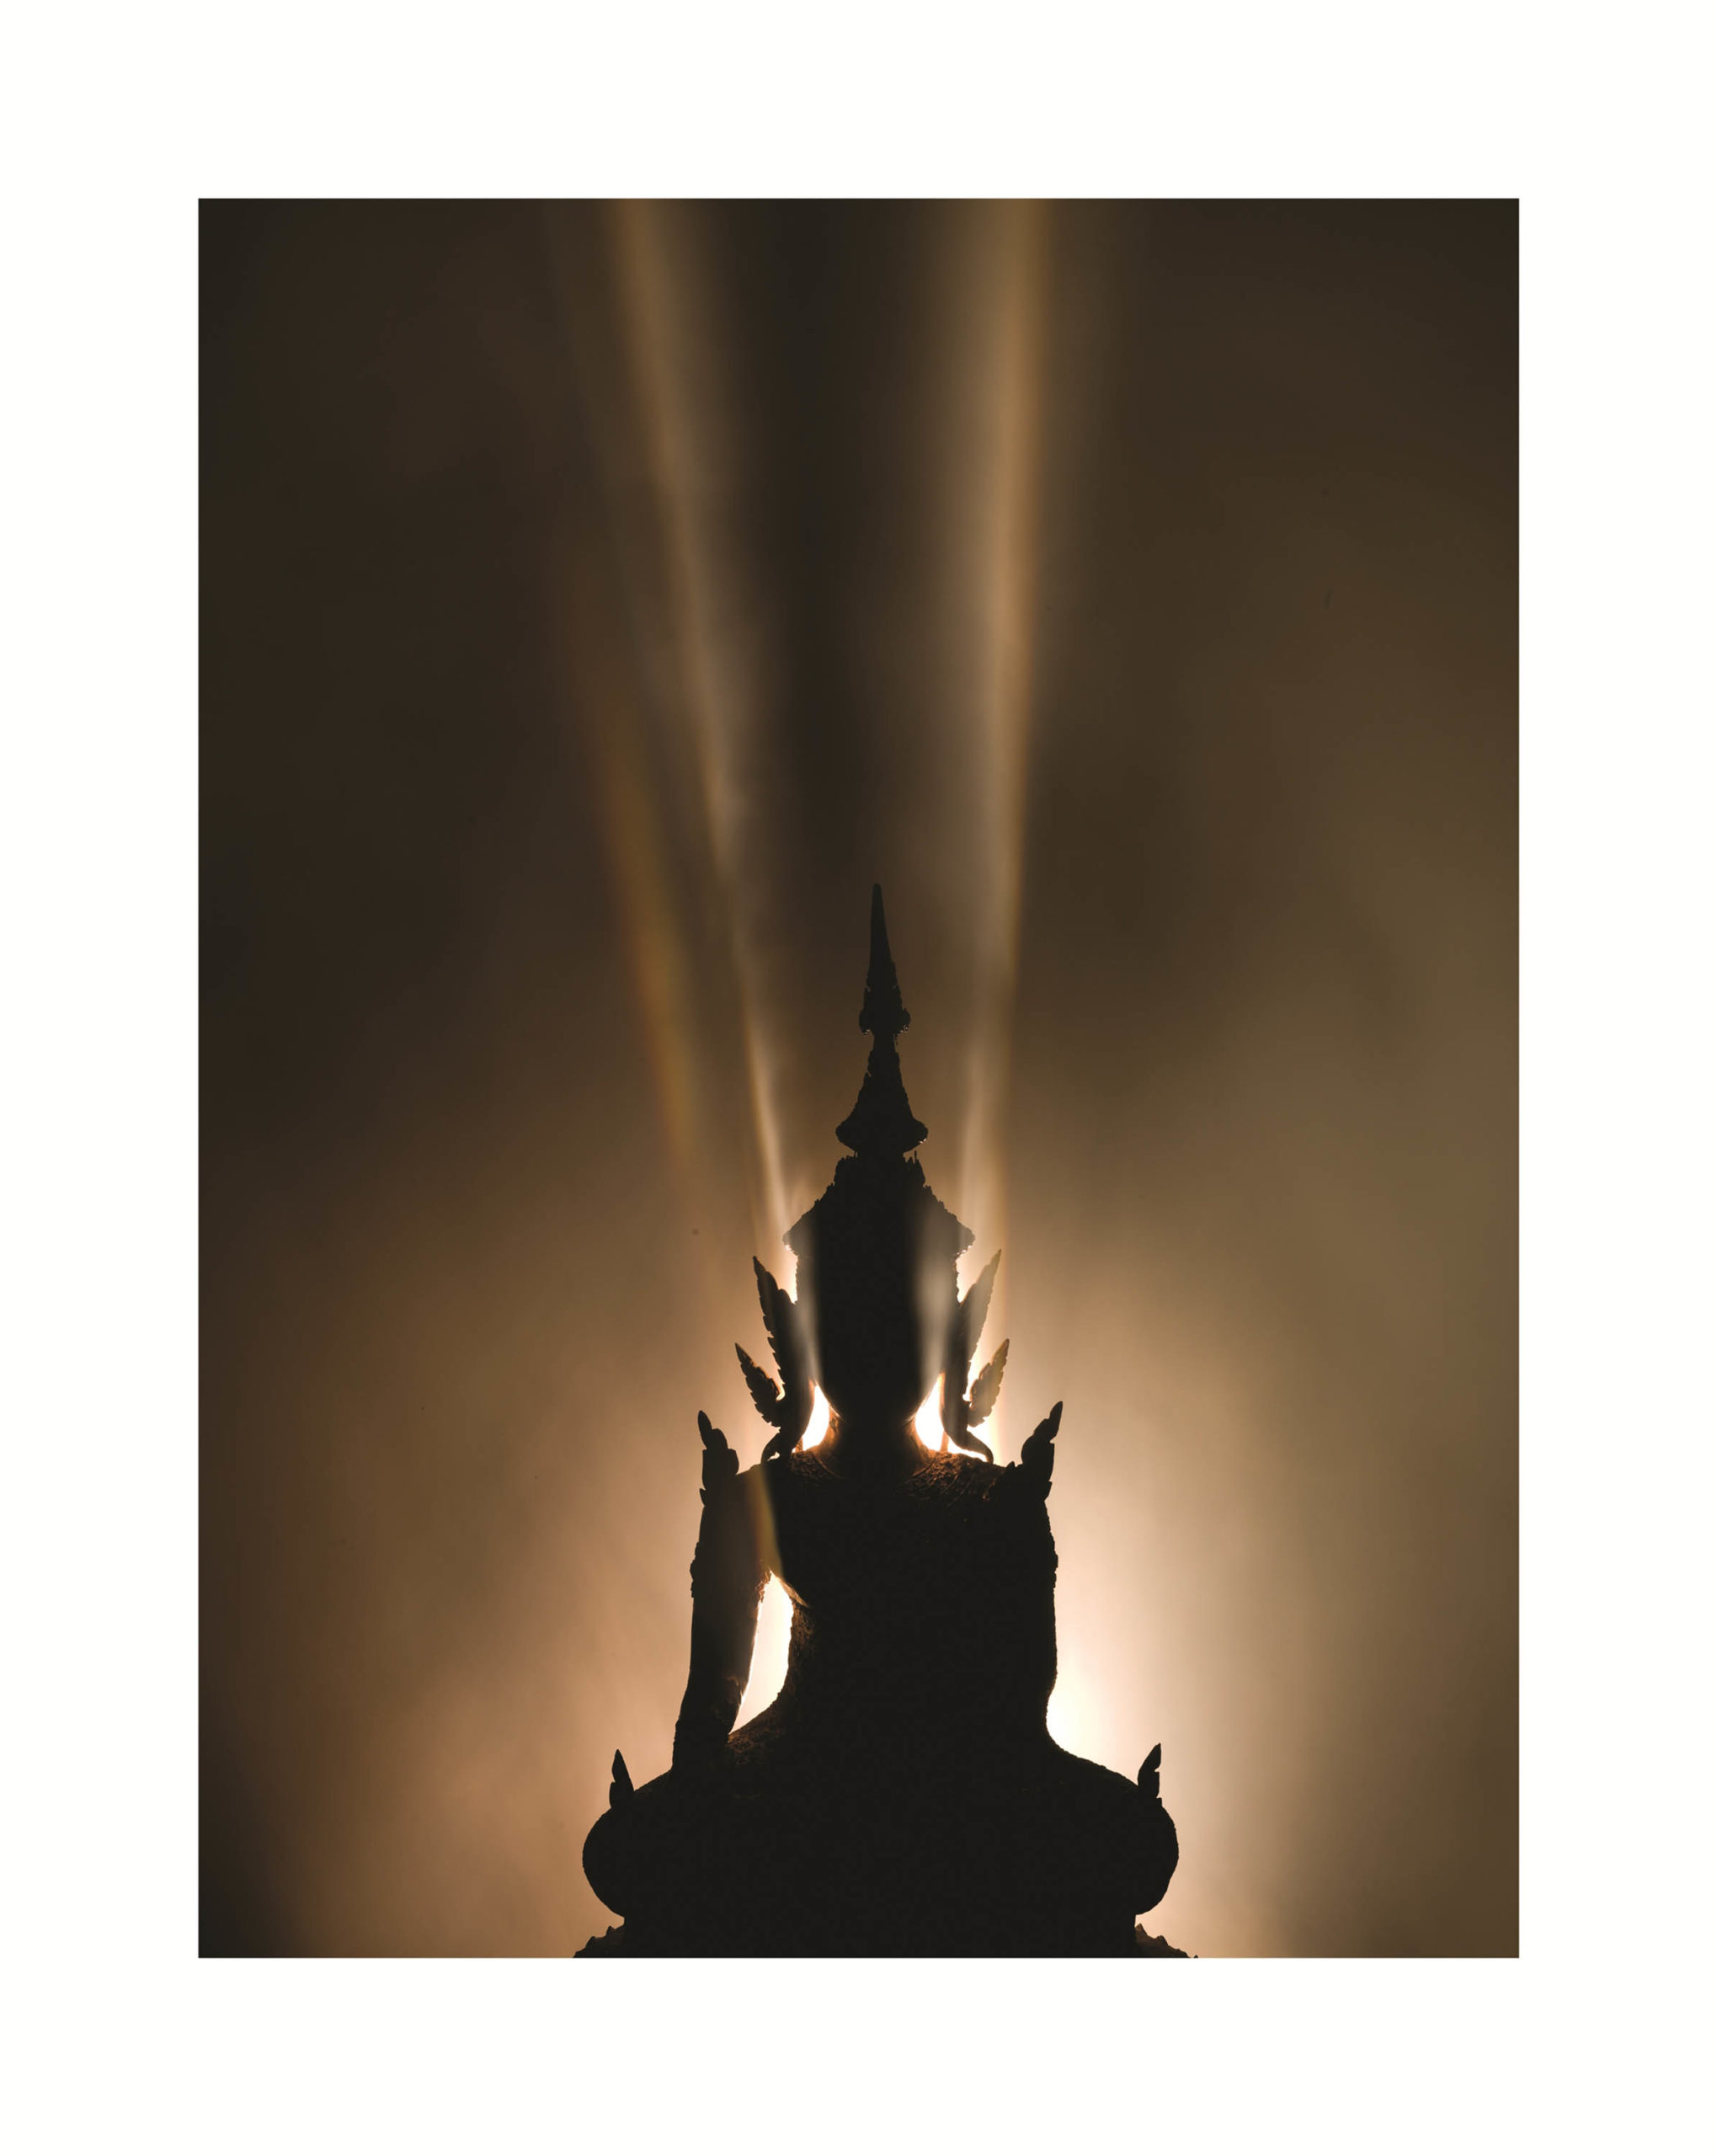 The radii of the Dhamma2